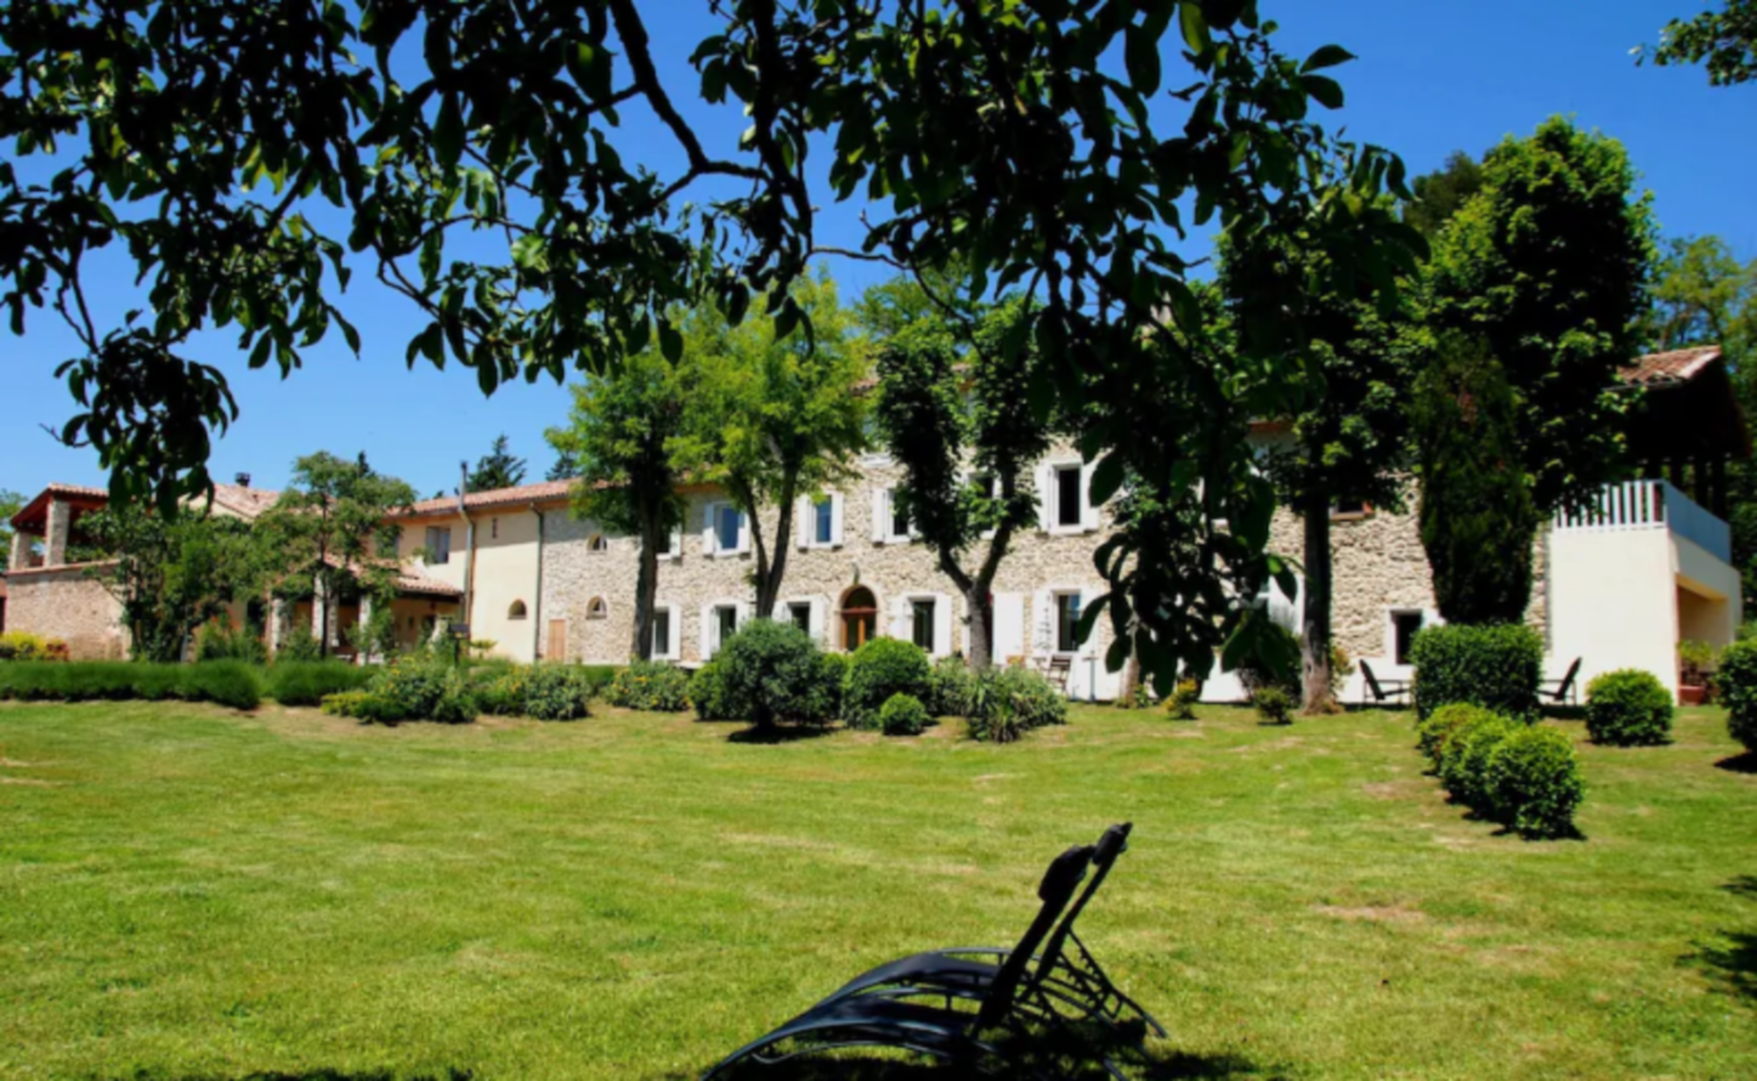 A large lawn in front of a house at Domaine La Monèze Basse.